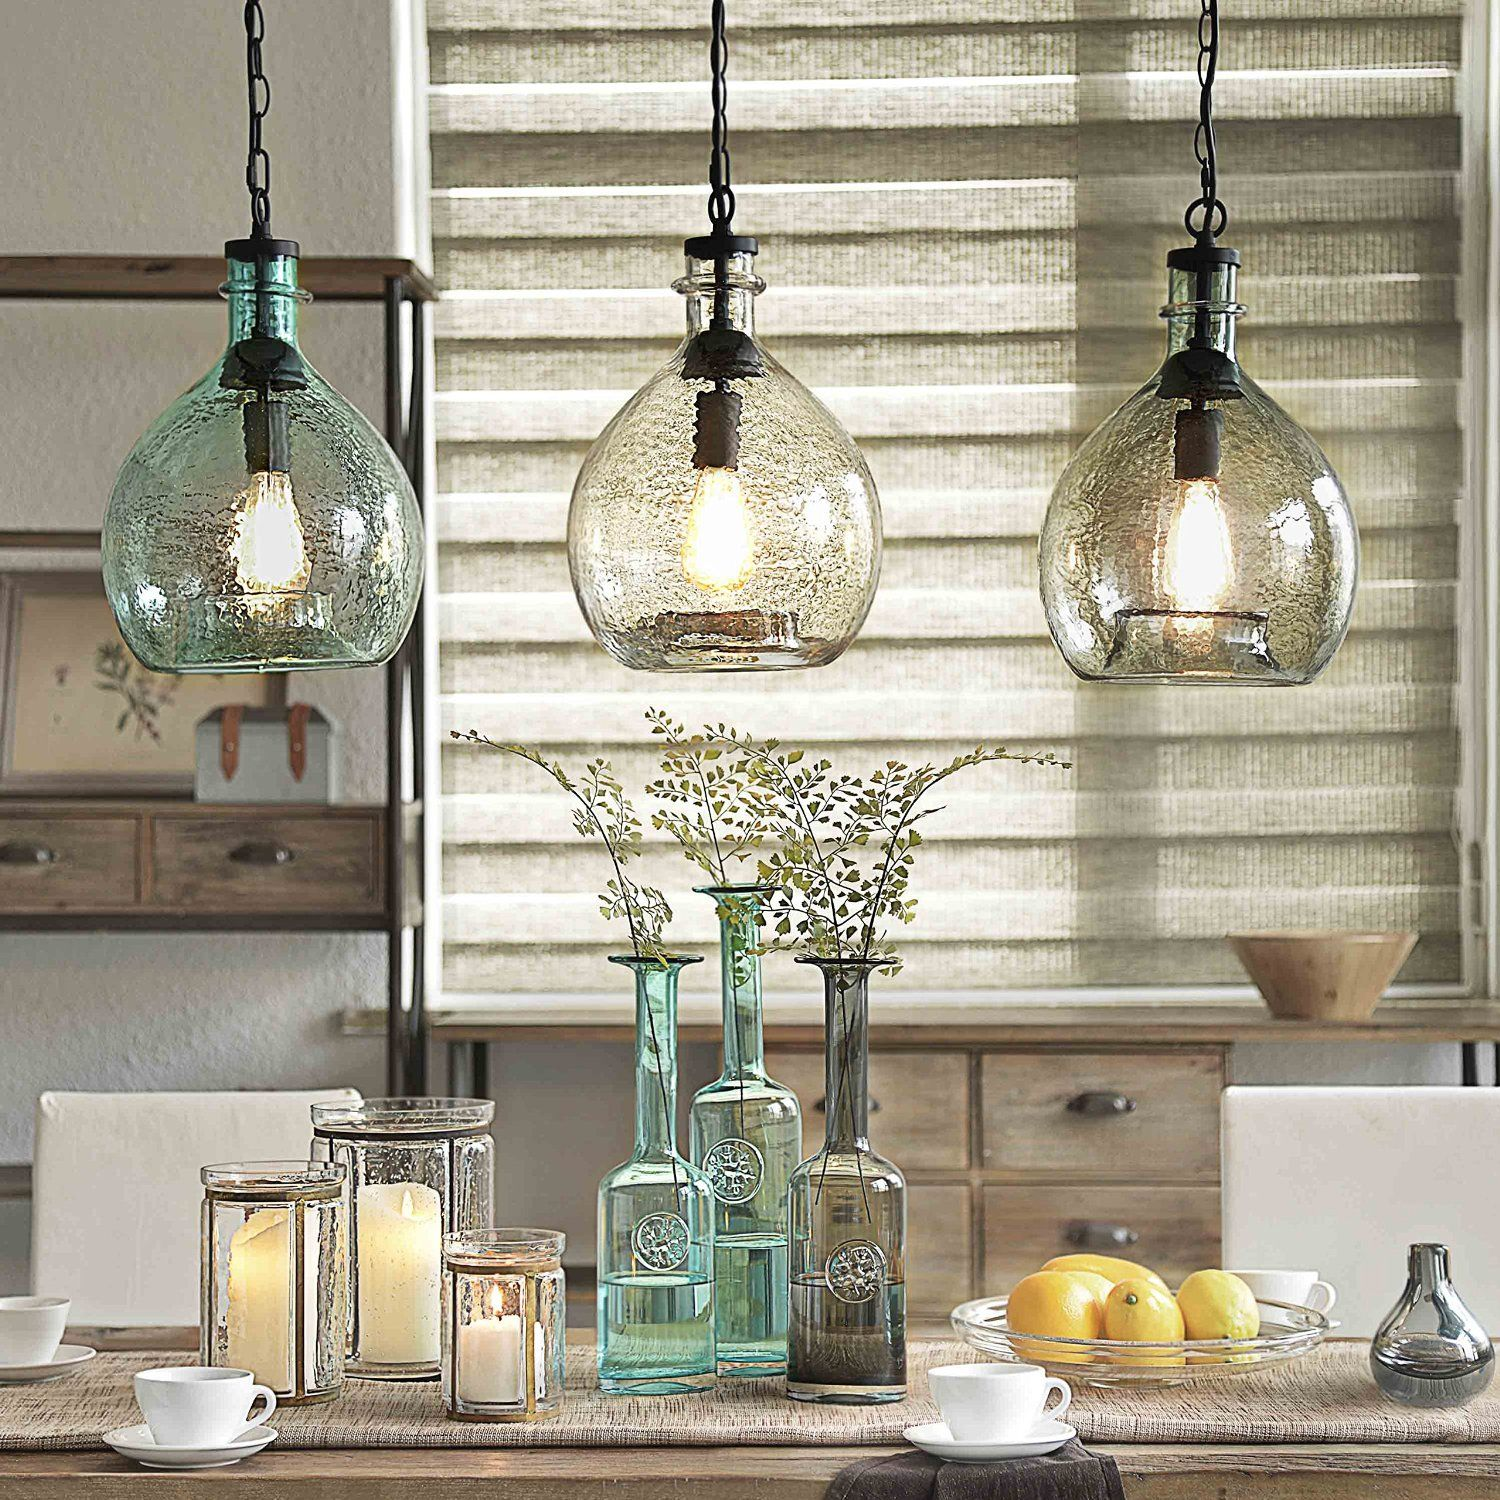 Vintage Industrial Glass Pendant Light: [Off To College] CASAMOTION Wavy Vintage Industrial Hand